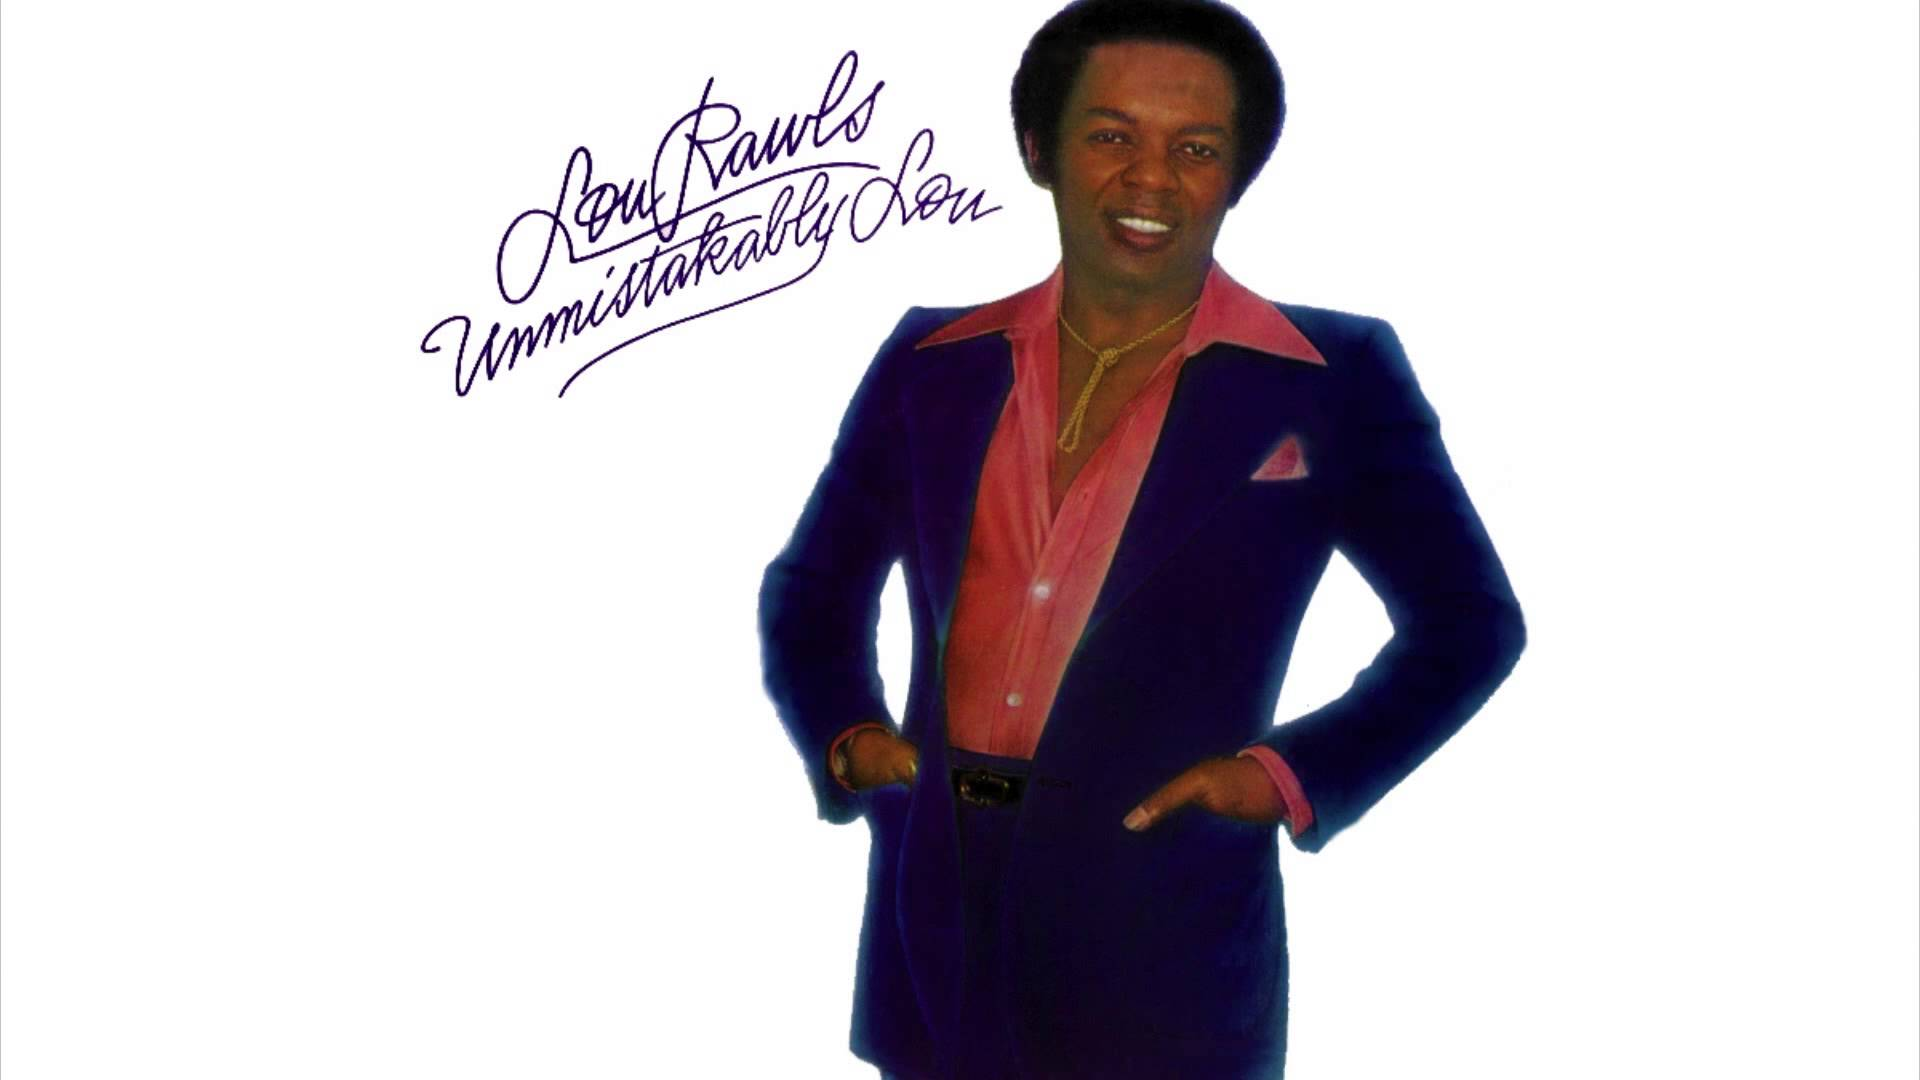 """Lou Rawls - See You When I Git There (12"""" Extended Bed Stuy: Do or Die Remix)"""